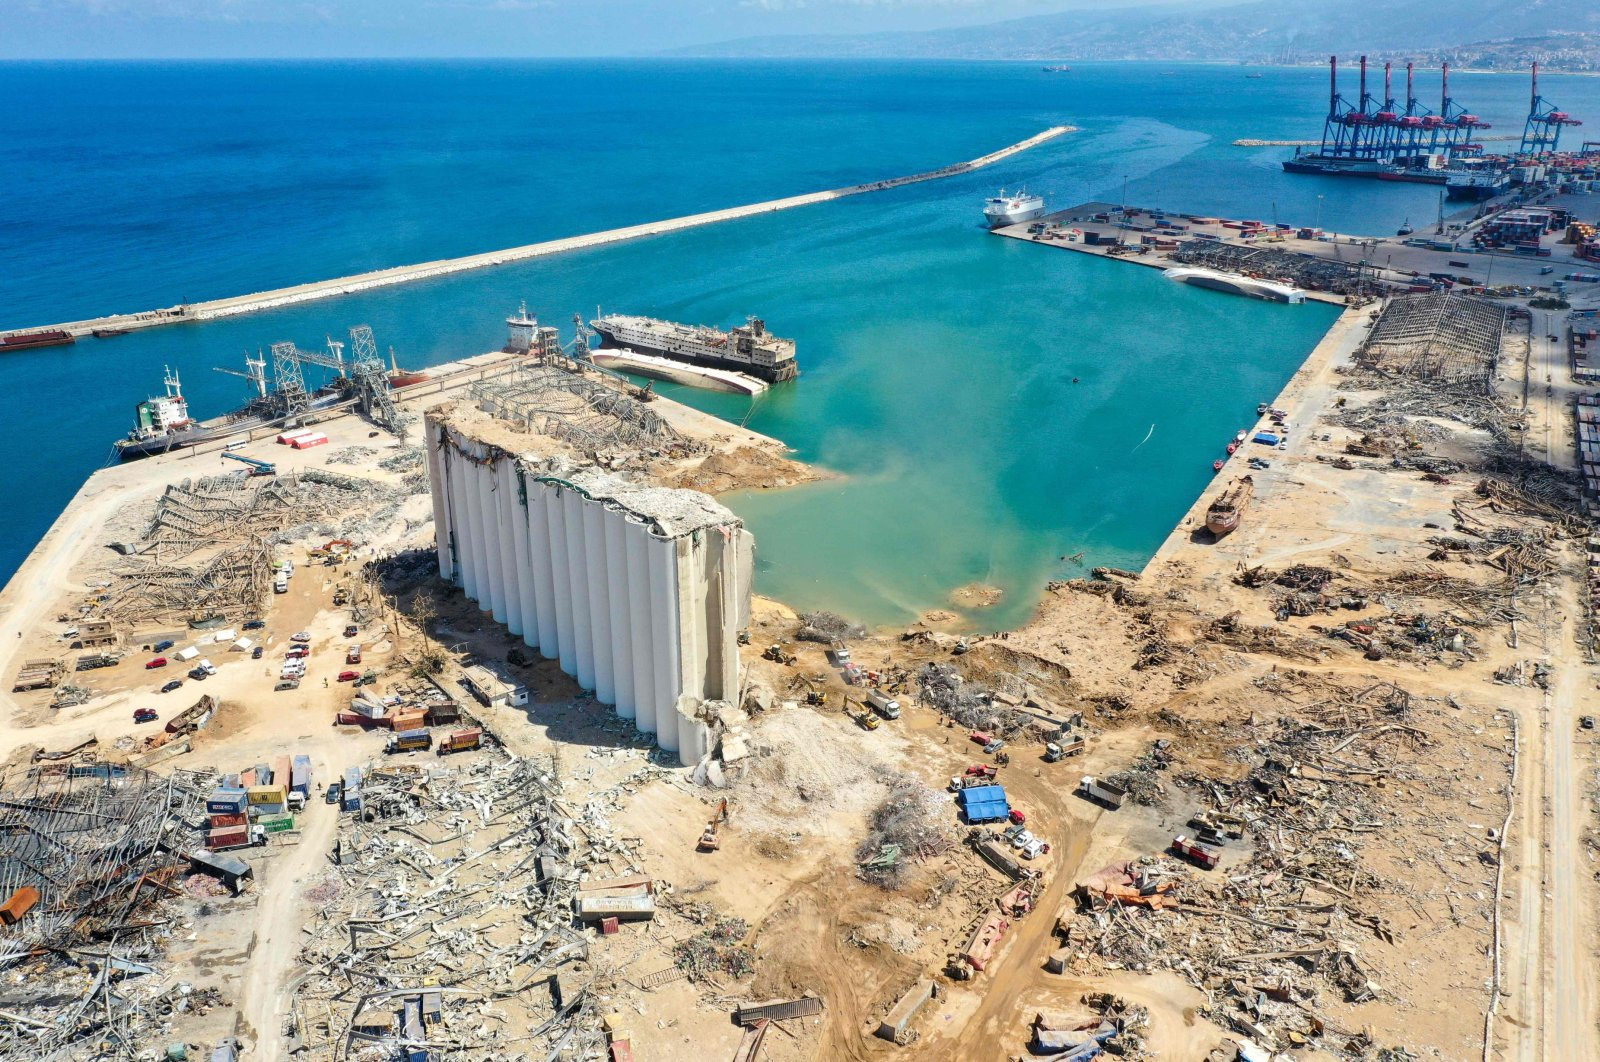 An aerial view of the port of Beirut, the damaged grain silo and the crater caused by the colossal explosion of a huge pile of ammonium nitrate that had languished for years in a port warehouse, leaving scores of people dead or injured and causing devastation in the Lebanese capital, Aug. 9, 2020. (AFP Photo)